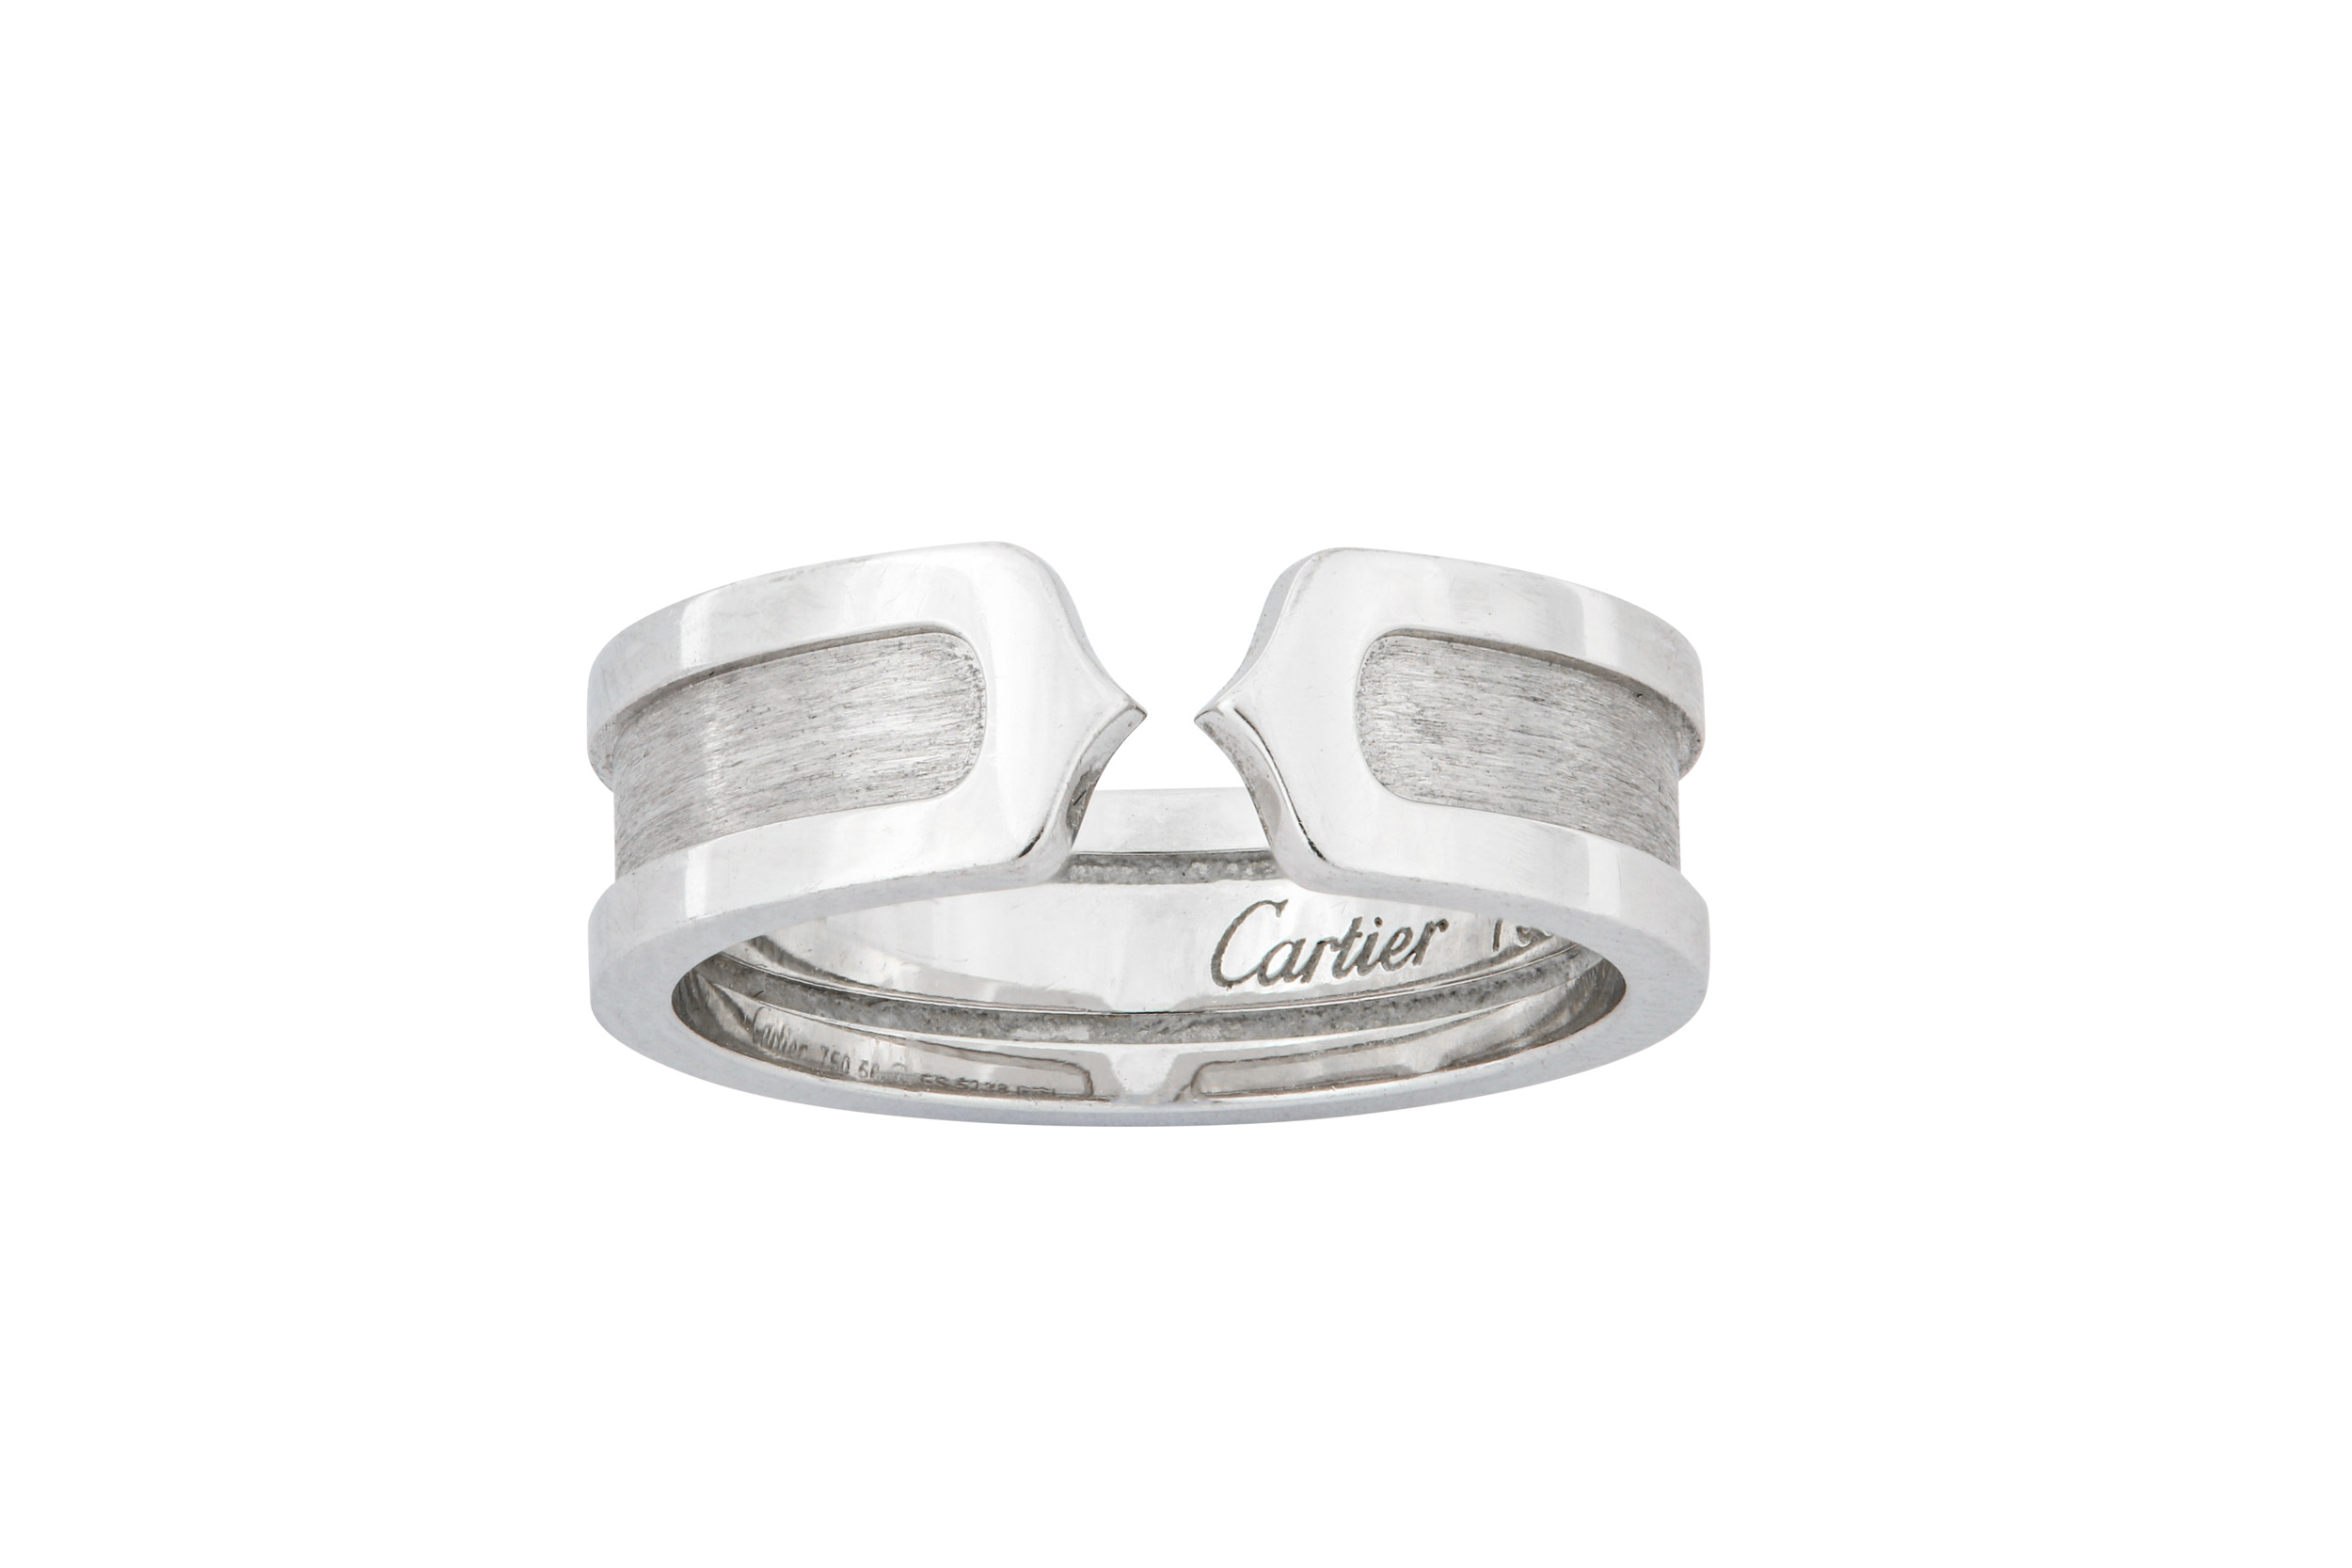 Lot 15 - A 'Logo' ring, by Cartier